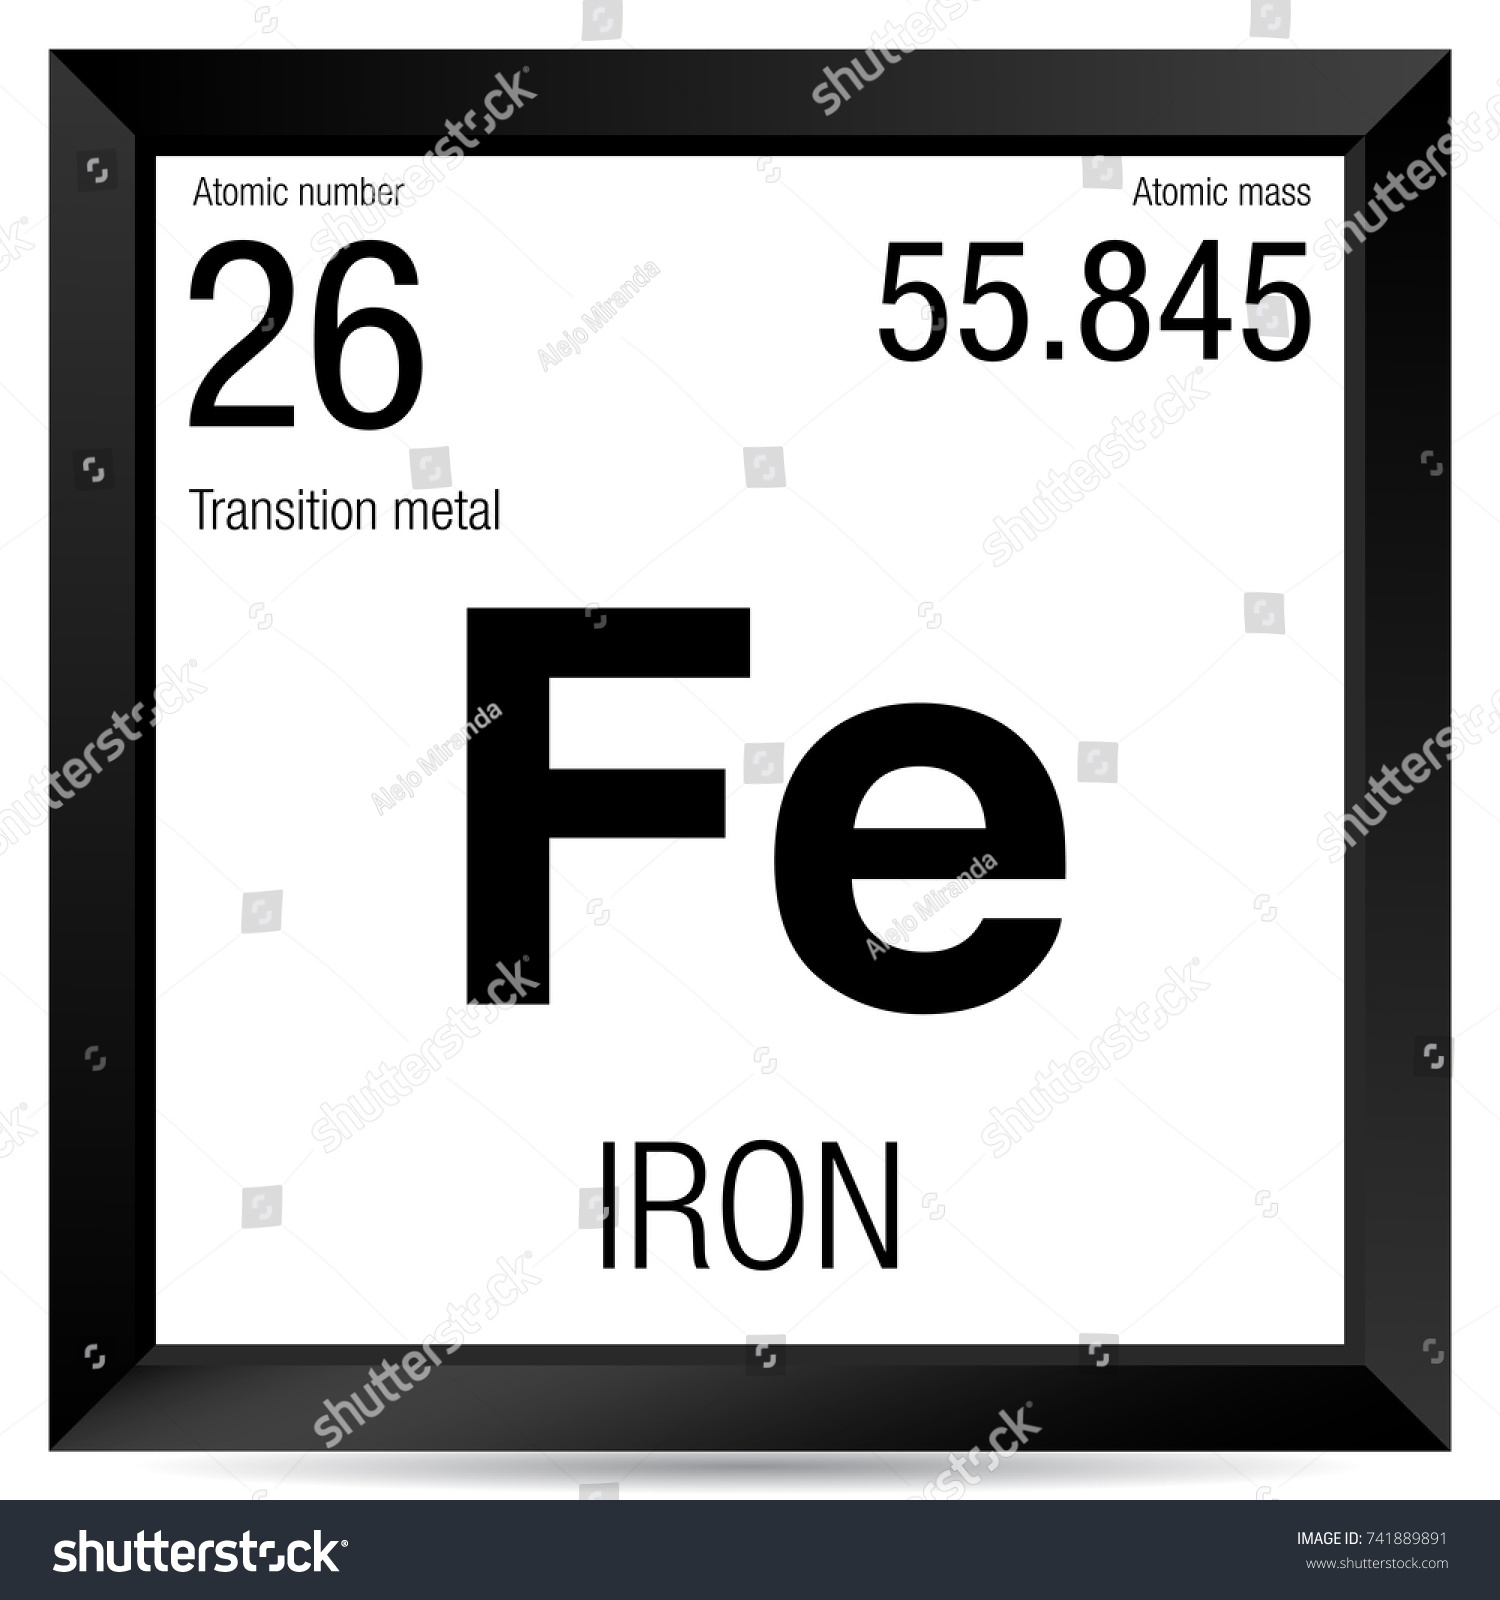 Iron symbol element number 26 periodic stock vector 741889891 iron symbol element number 26 of the periodic table of the elements chemistry buycottarizona Image collections